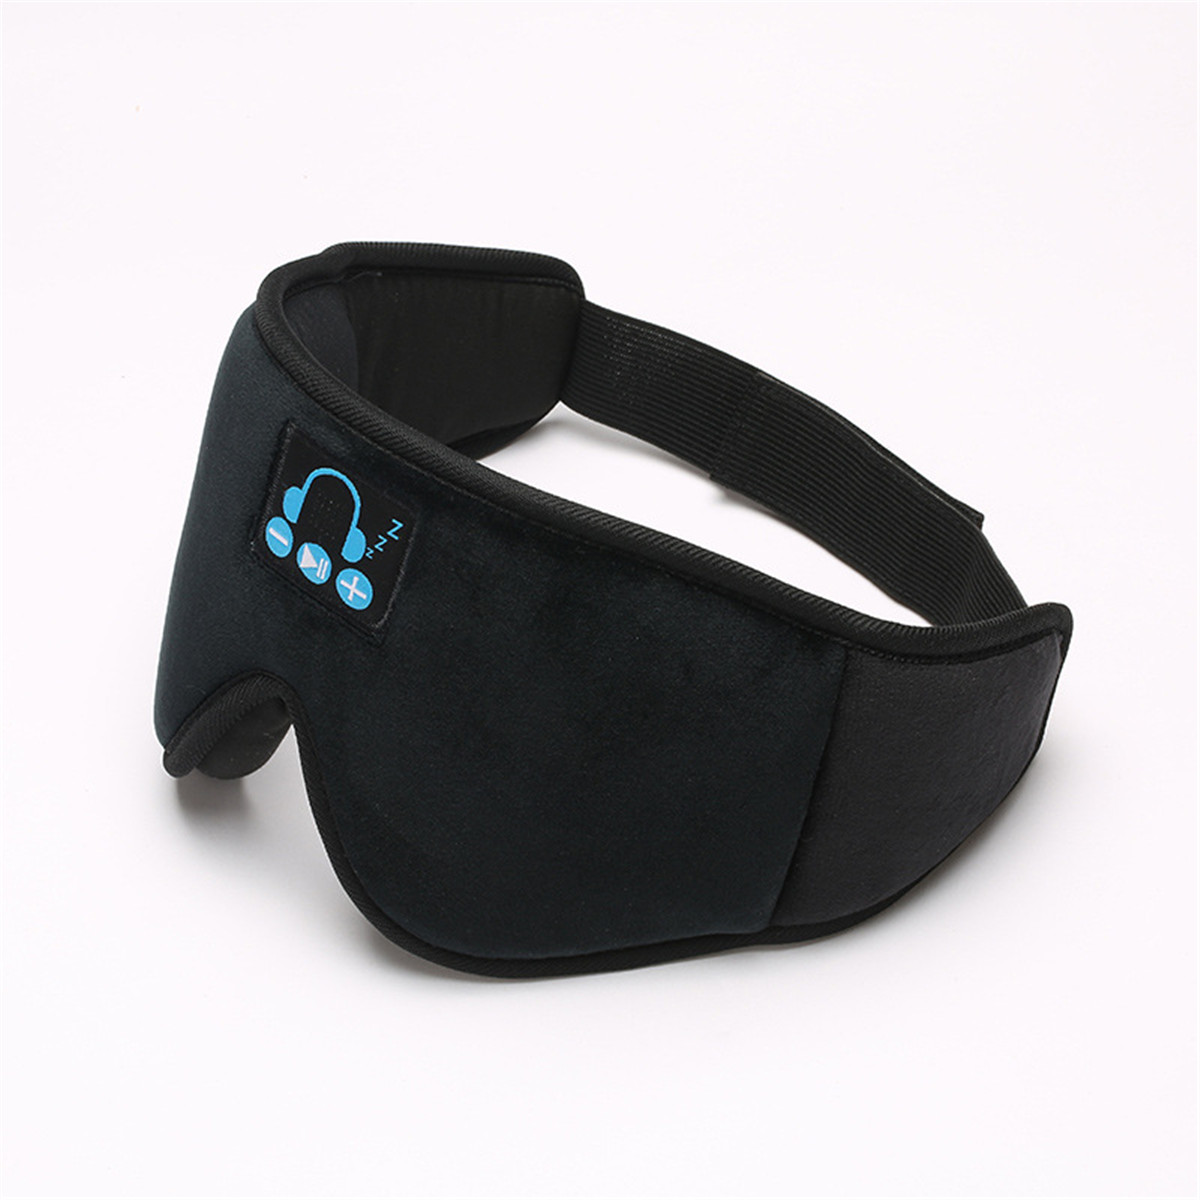 2-IN-1 Portable Wireless bluetooth 5.0 3D Stereo Smart Music Breathable Sleep Eyemask Blindfold